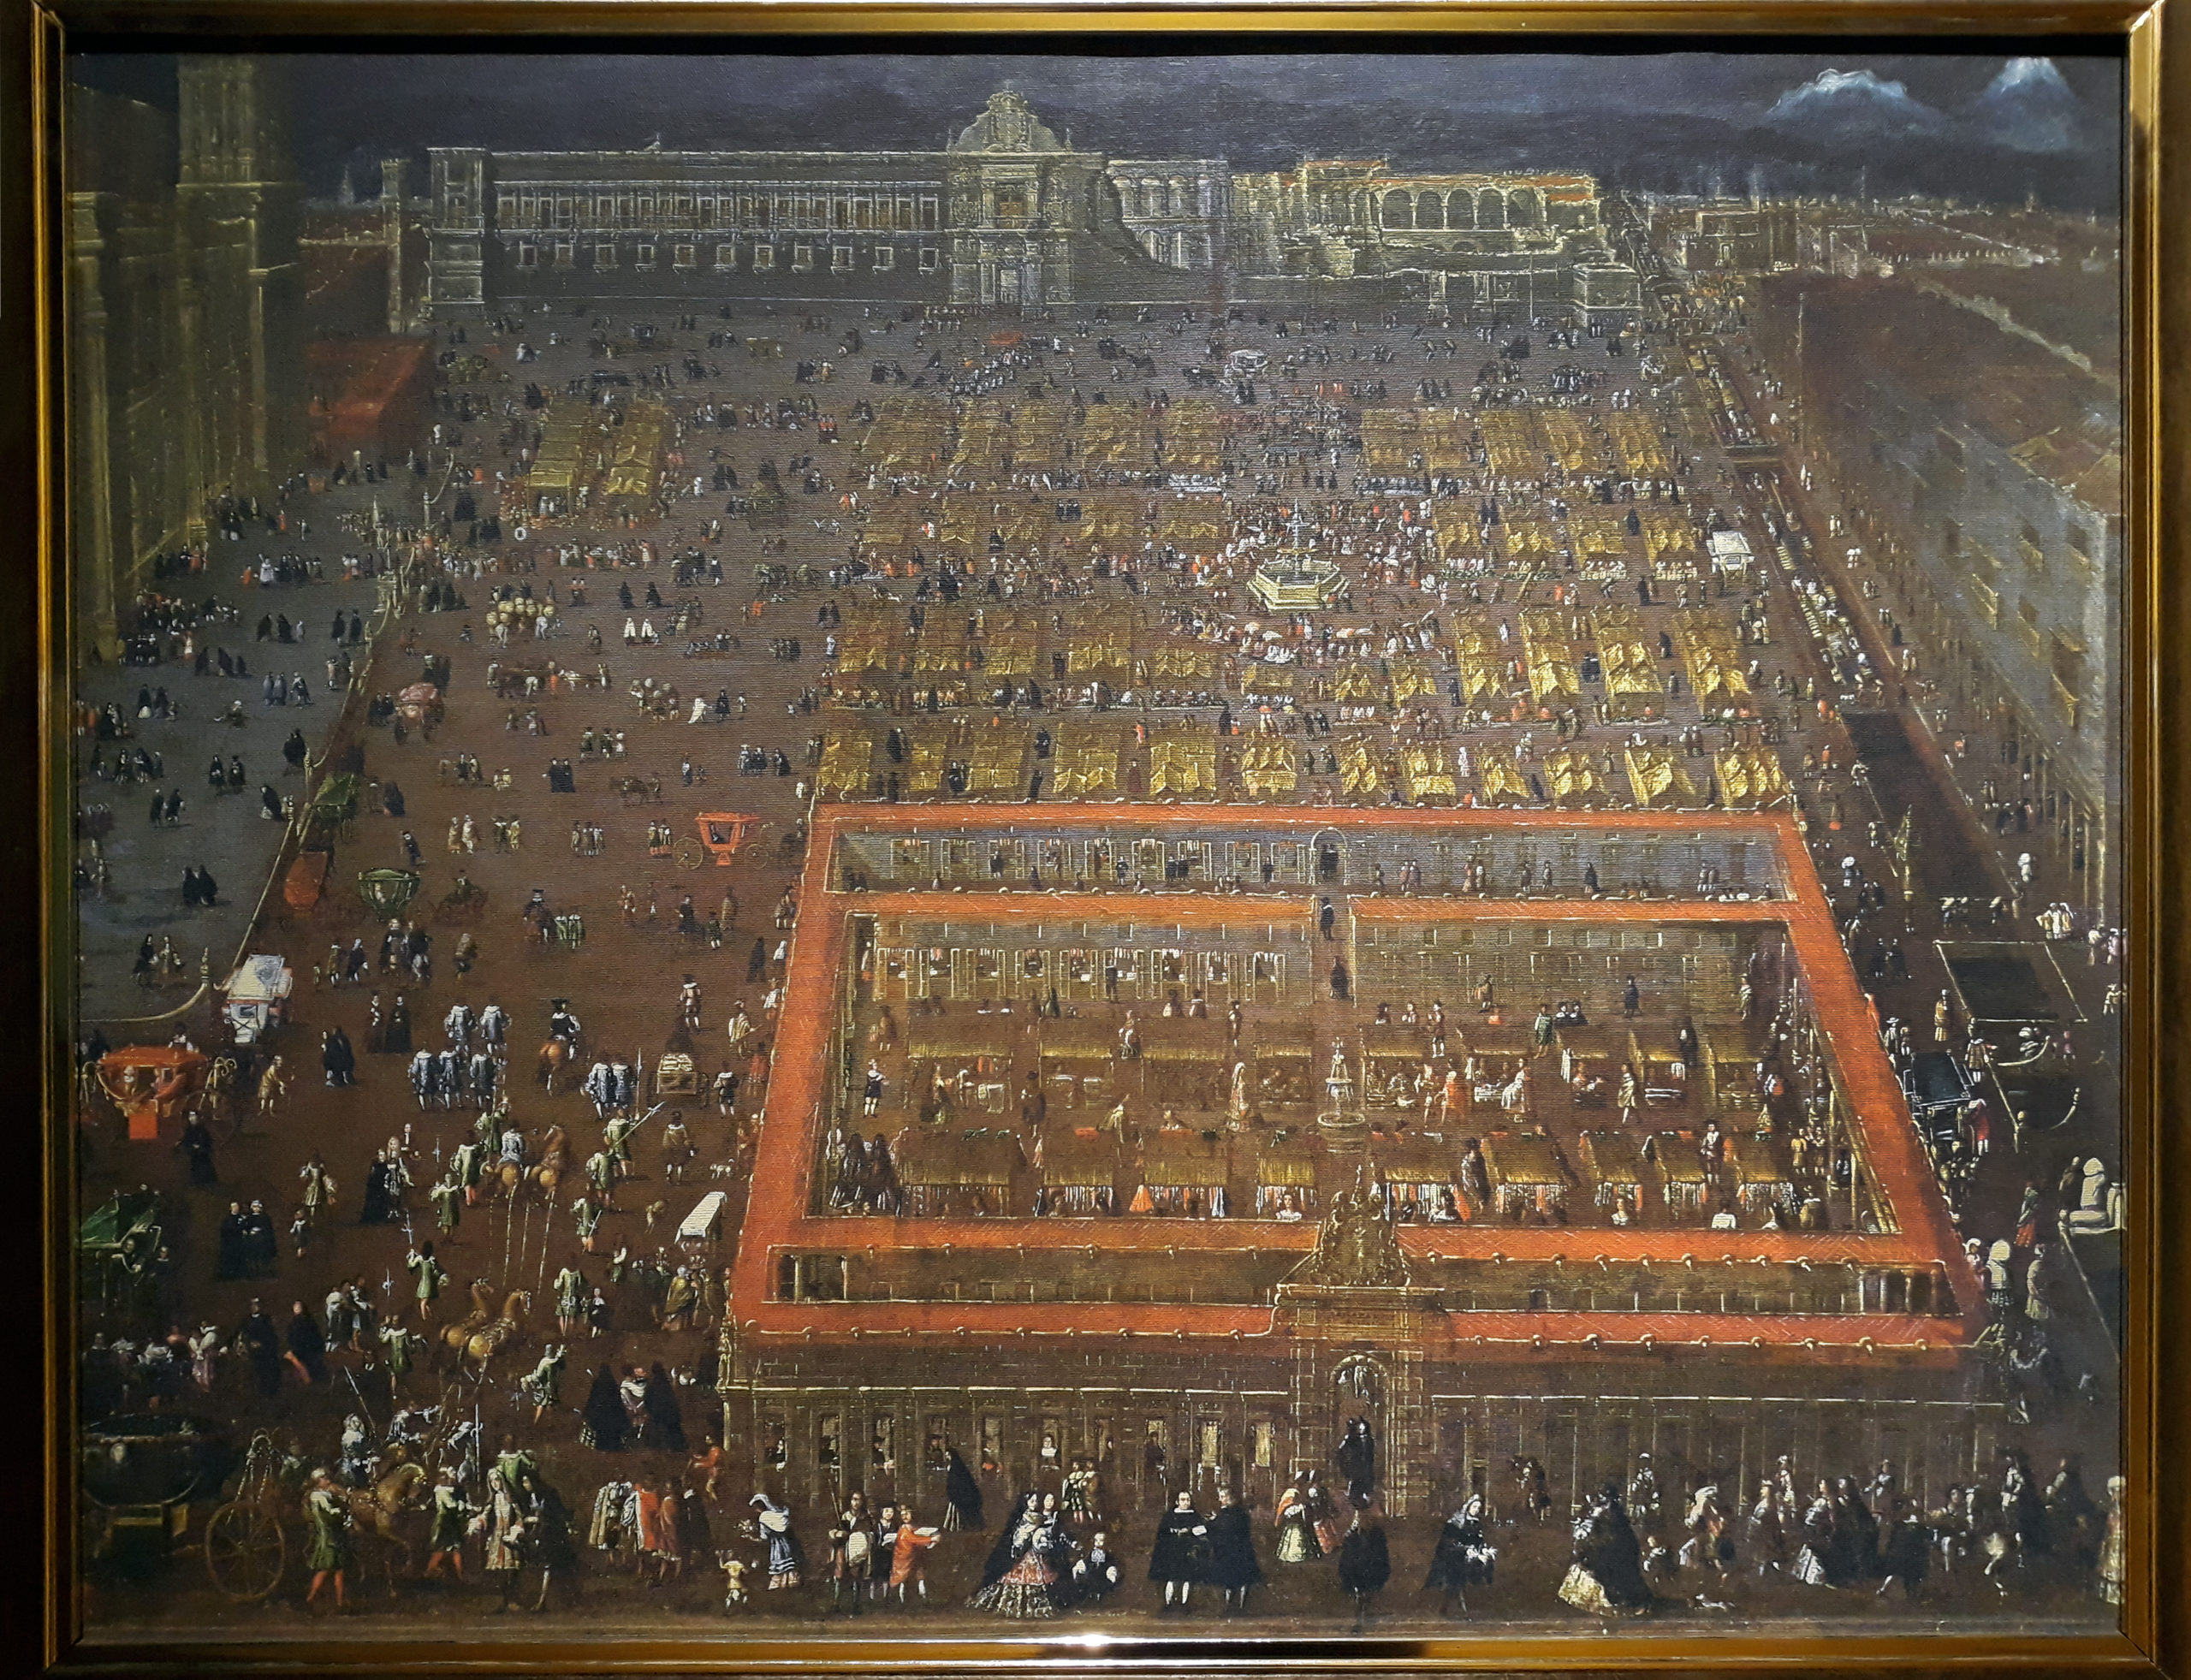 View of the Plaza Mayor of Mexico city (ca. 1695) by Cristóbal de Villalpando